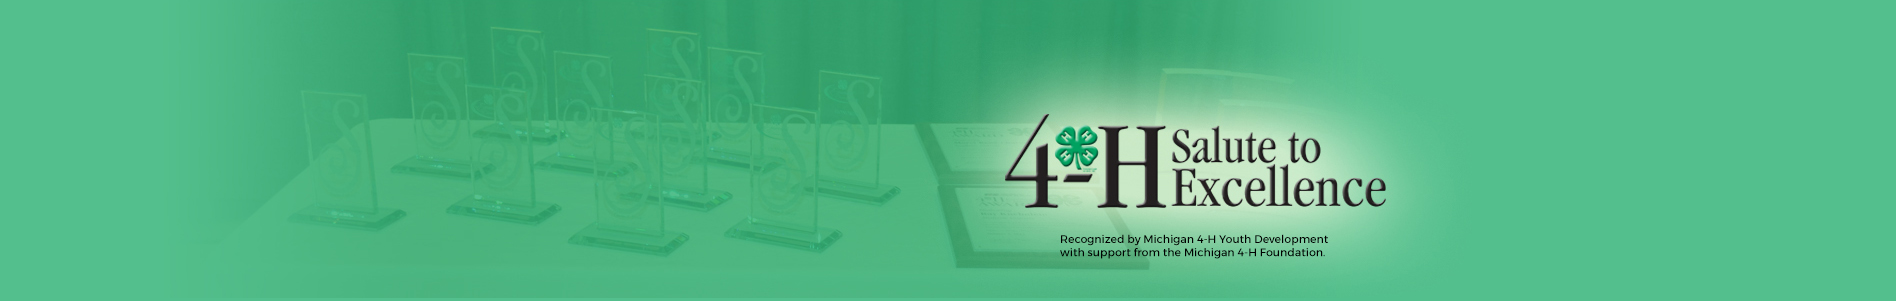 4-H Salute to Excellence Awards